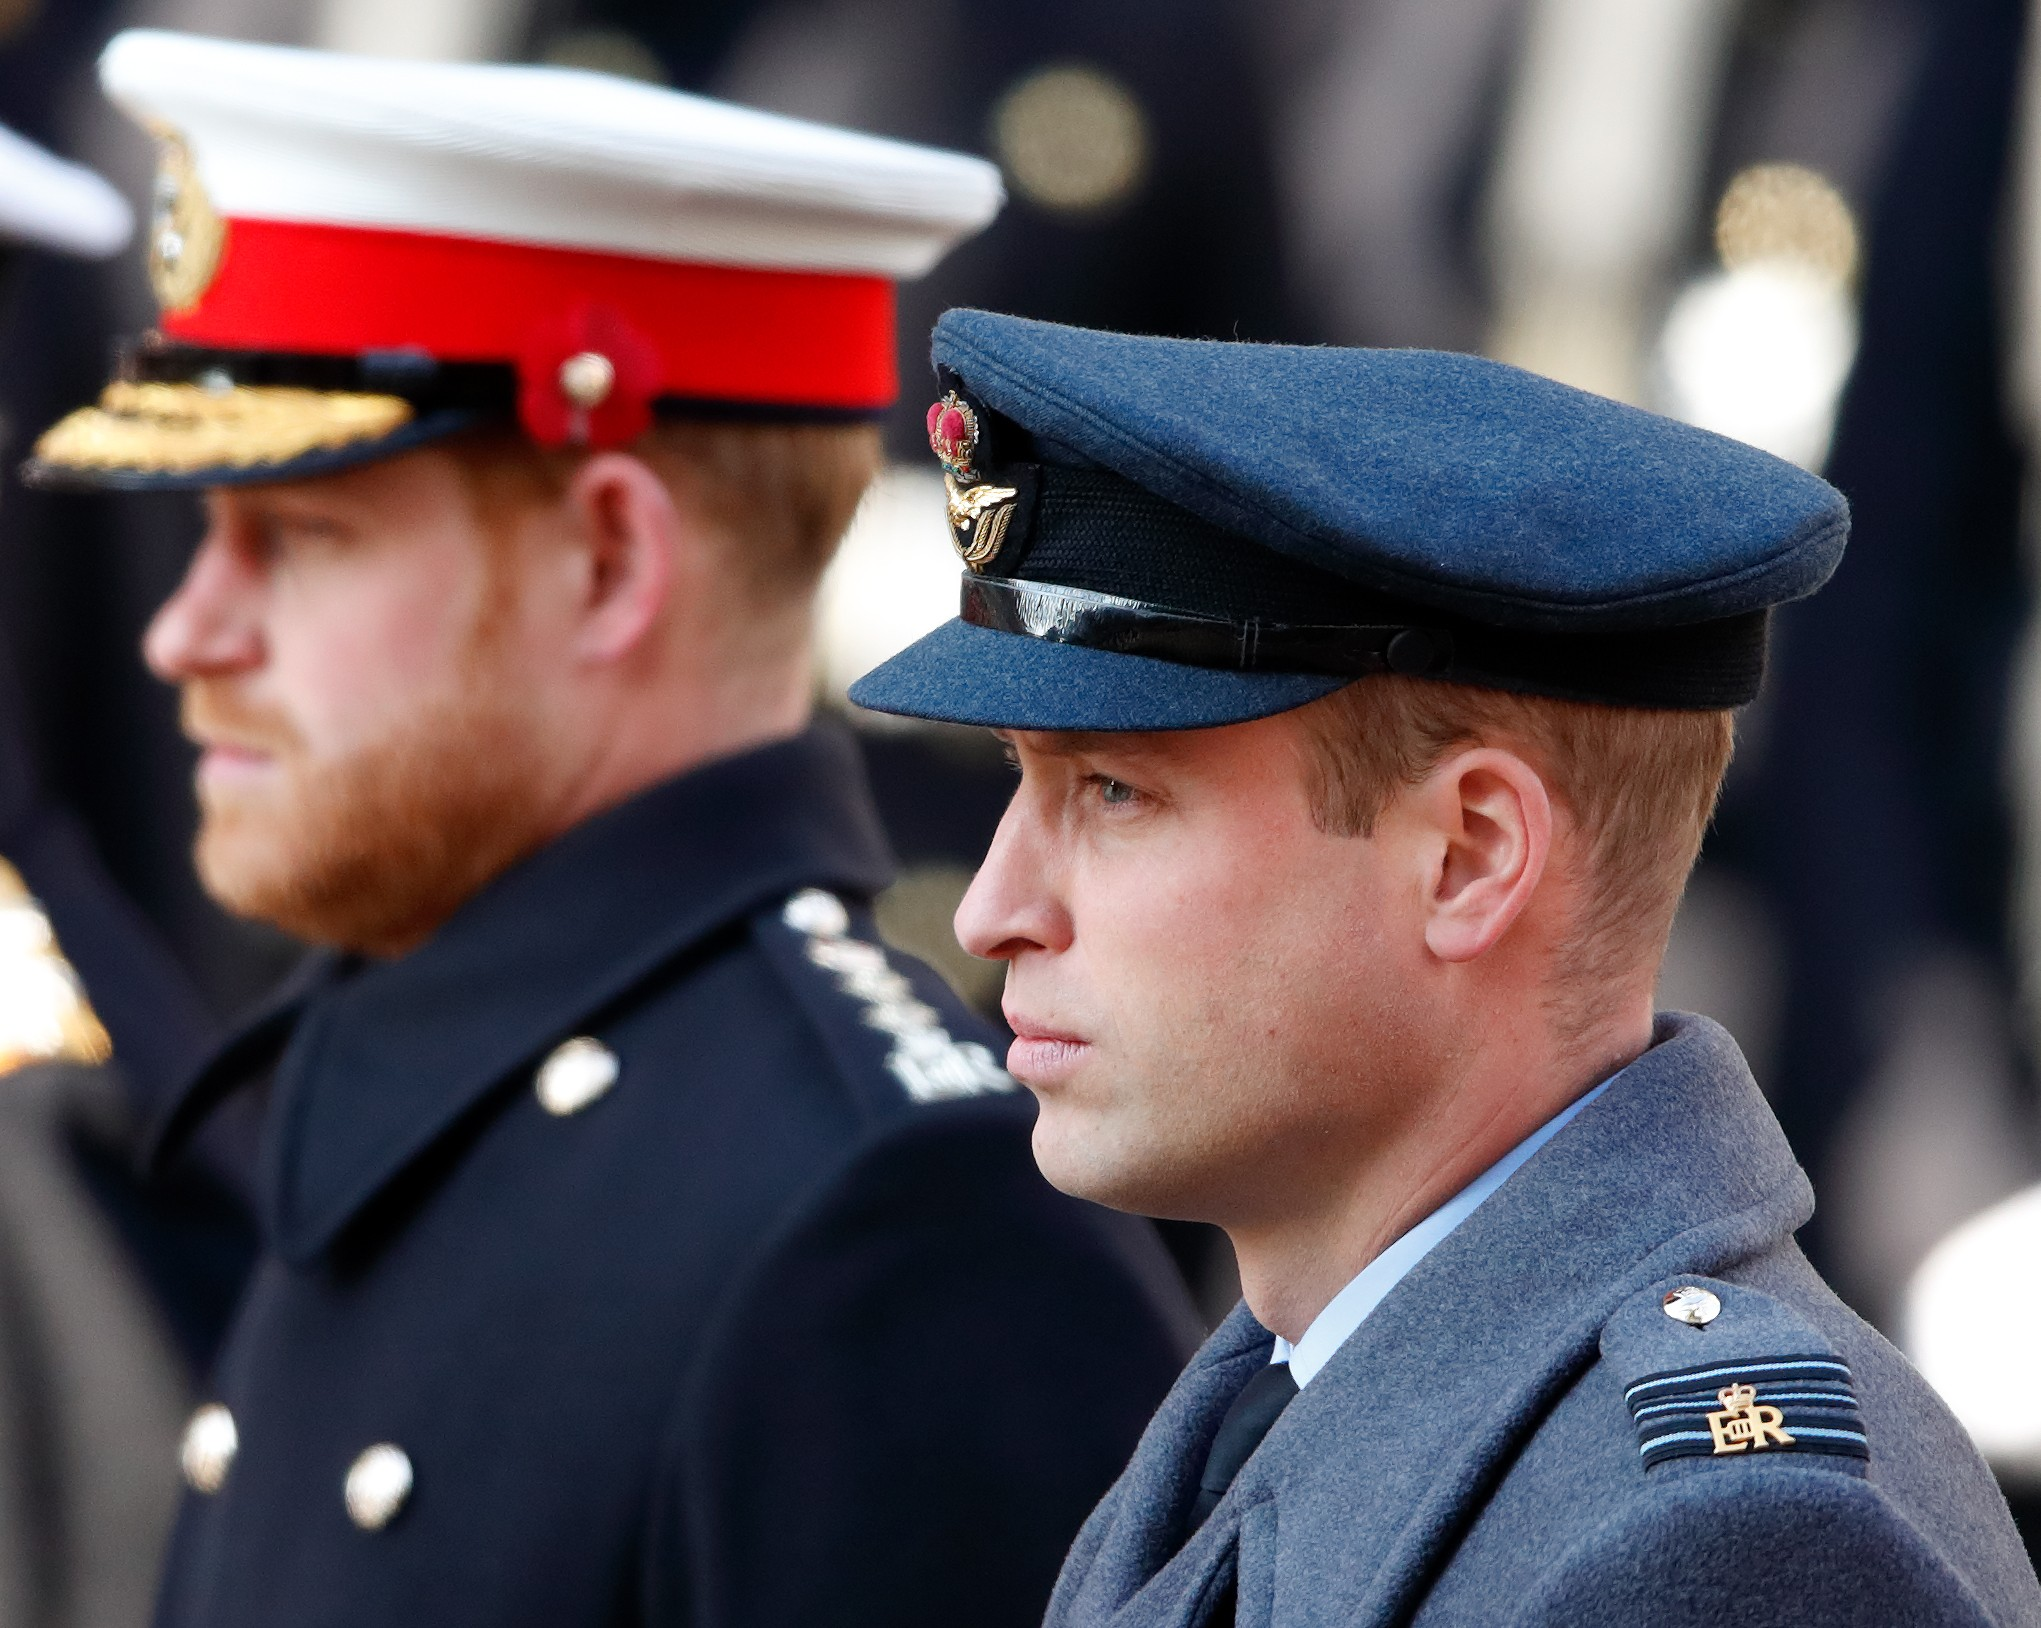 Prince Harry and Prince William at the British Royal Family Event in November 2019 (Photo: Getty Images)